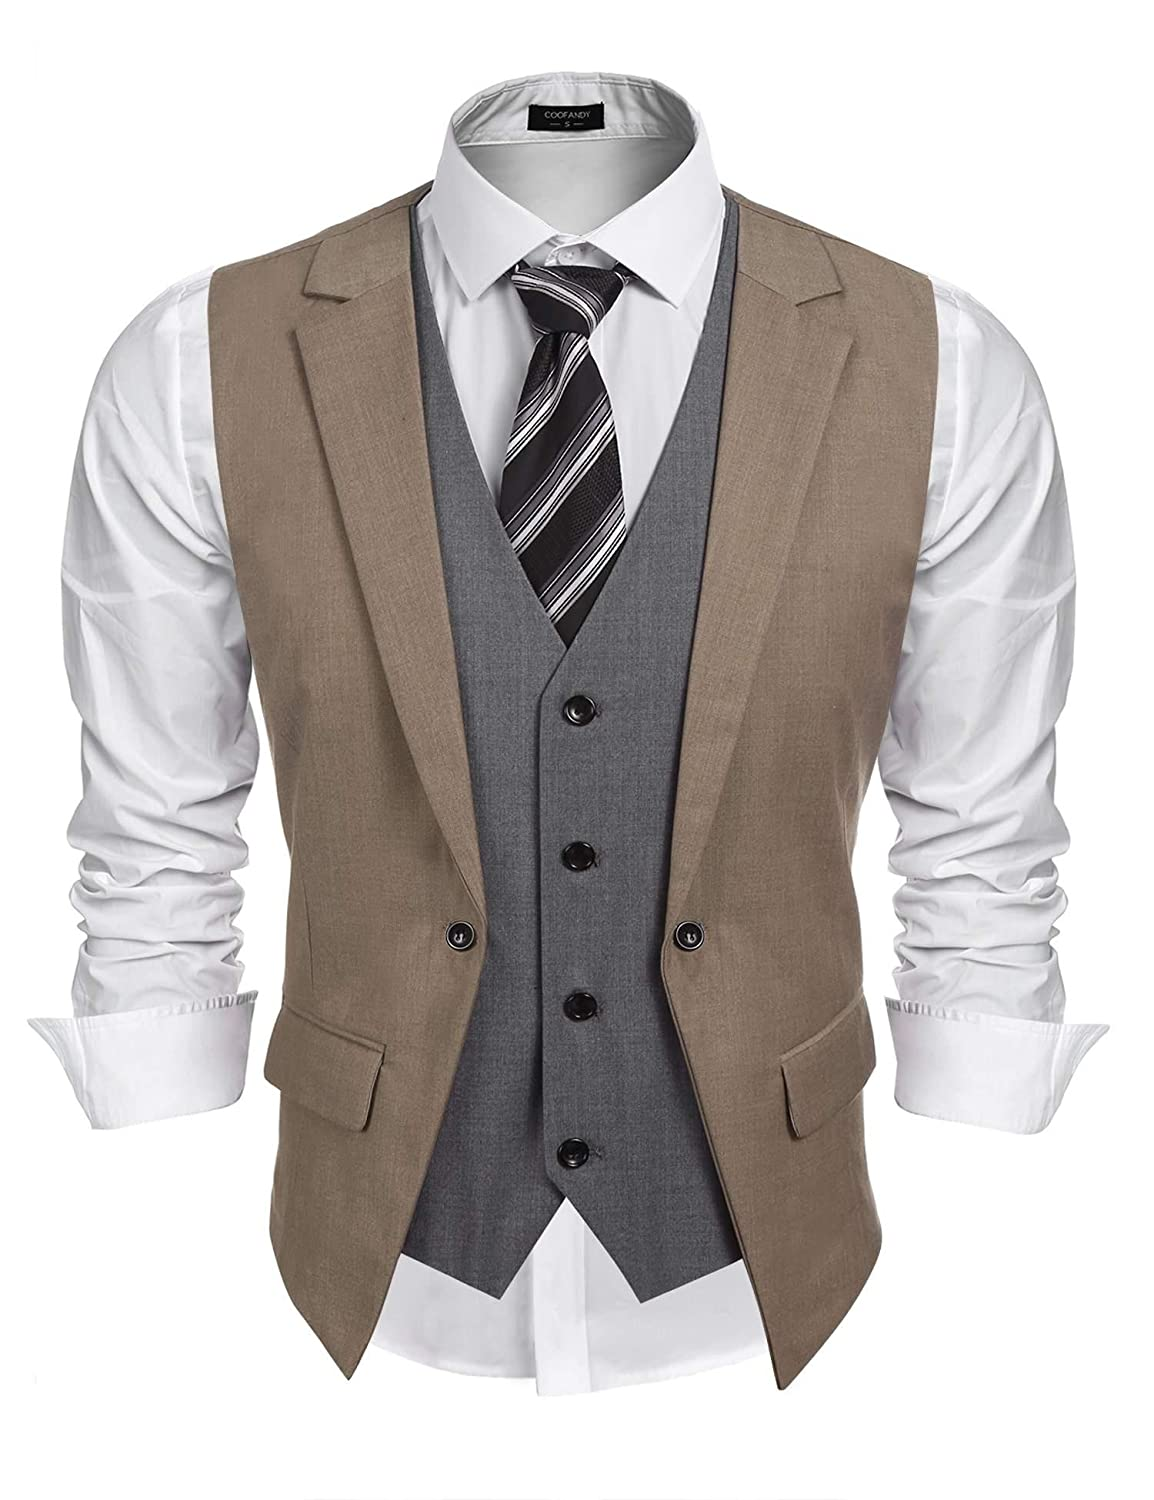 Coofandy Mens Waistcoat V-Neck Slim Fit Suit Vests Lapel 2 Piece Layered Sleeveless Jacket